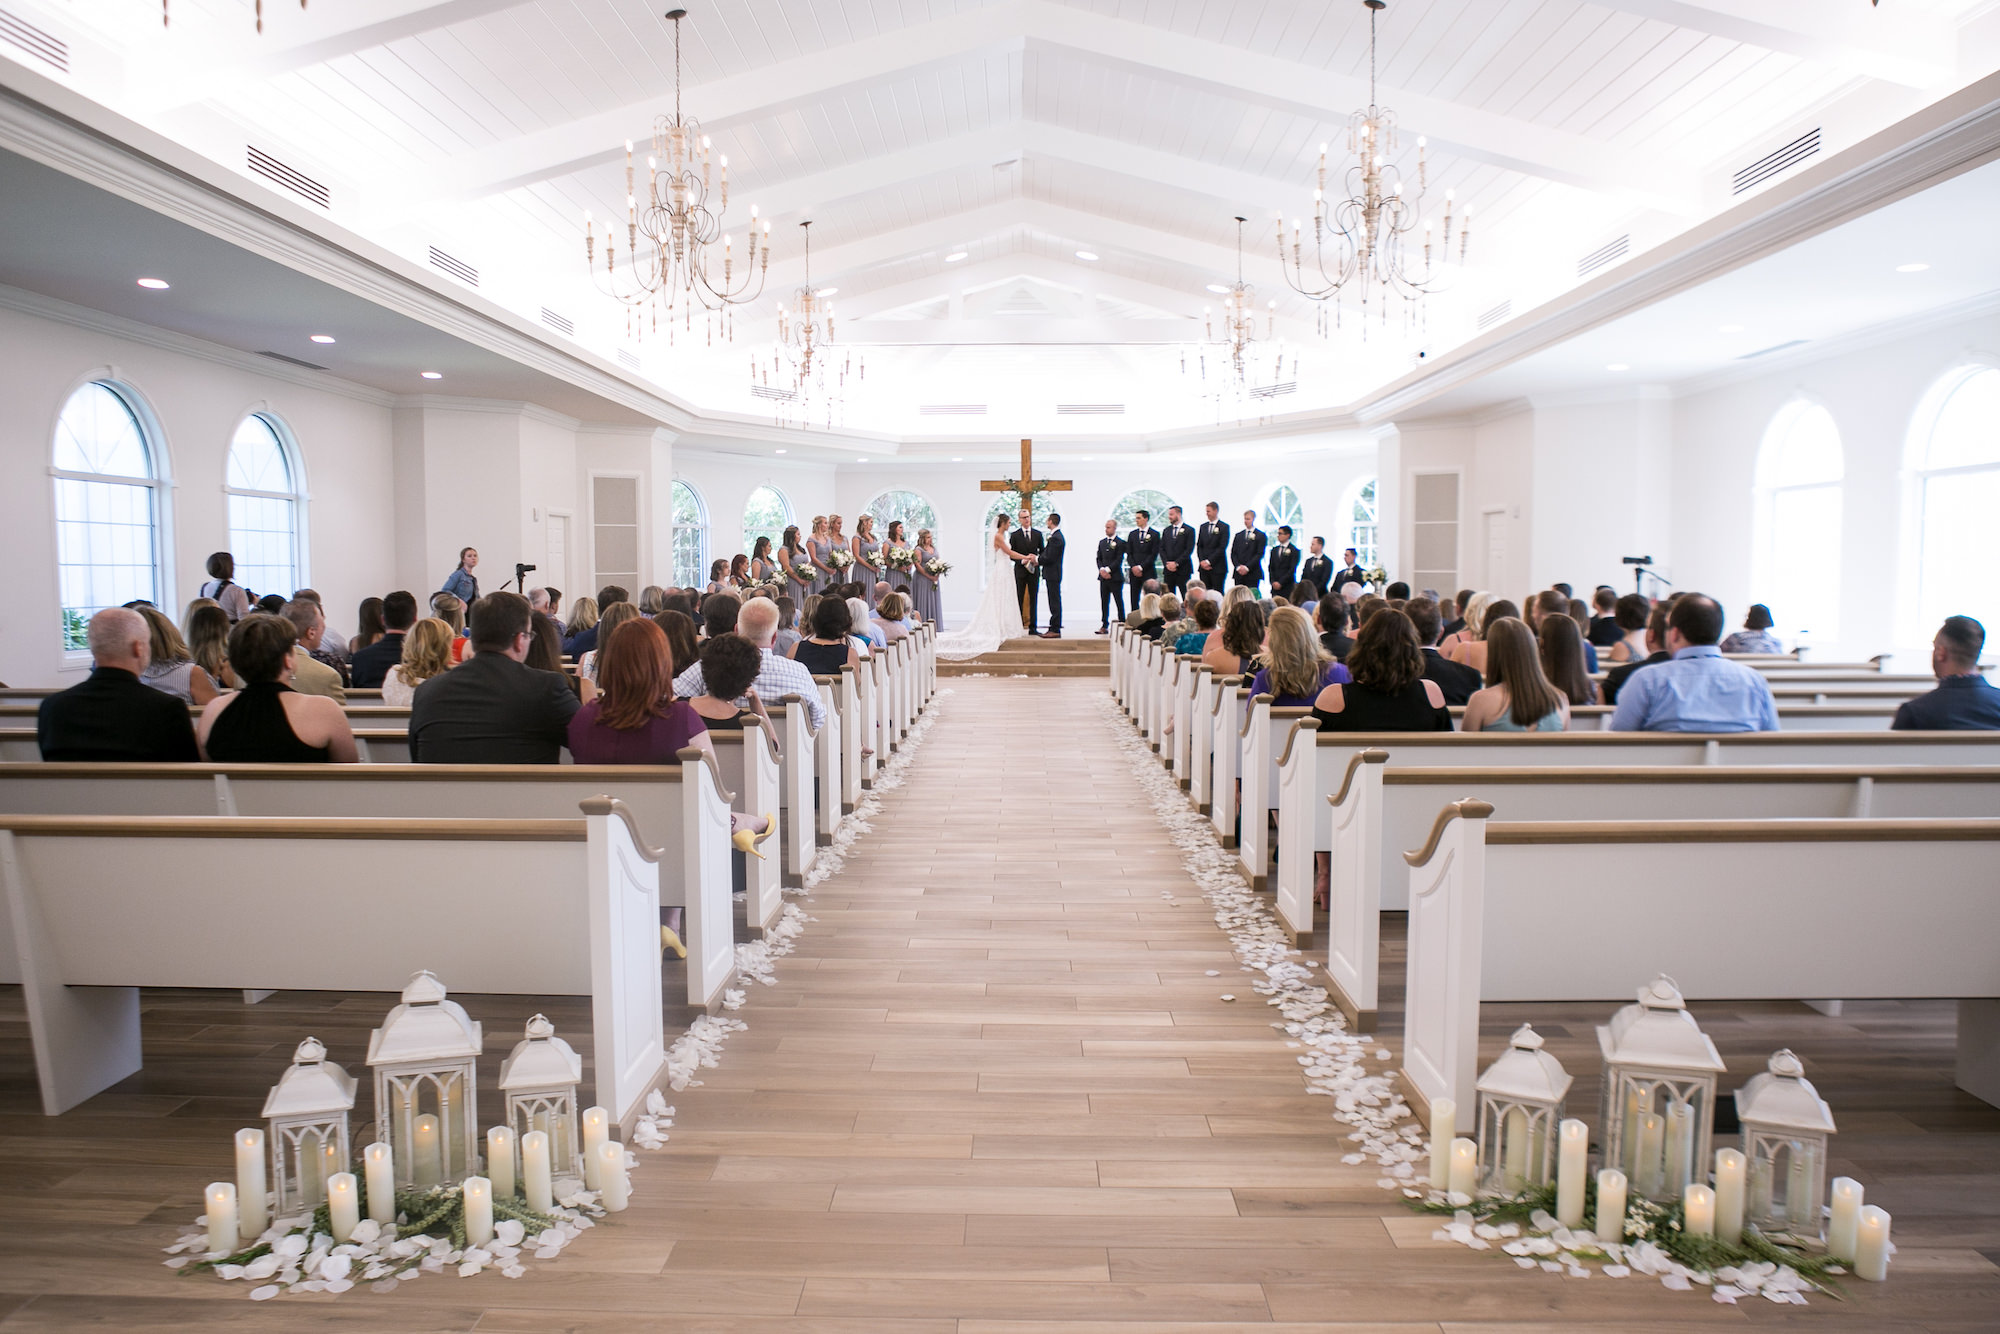 Traditional Church Wedding Ceremony Bride and Groom Exchanging Vows Portrait   Tampa Bay Wedding Photographer Carrie Wildes Photography   Safety Harbor Wedding Venue Harborside Chapel   Wedding Planner Love Lee Lane